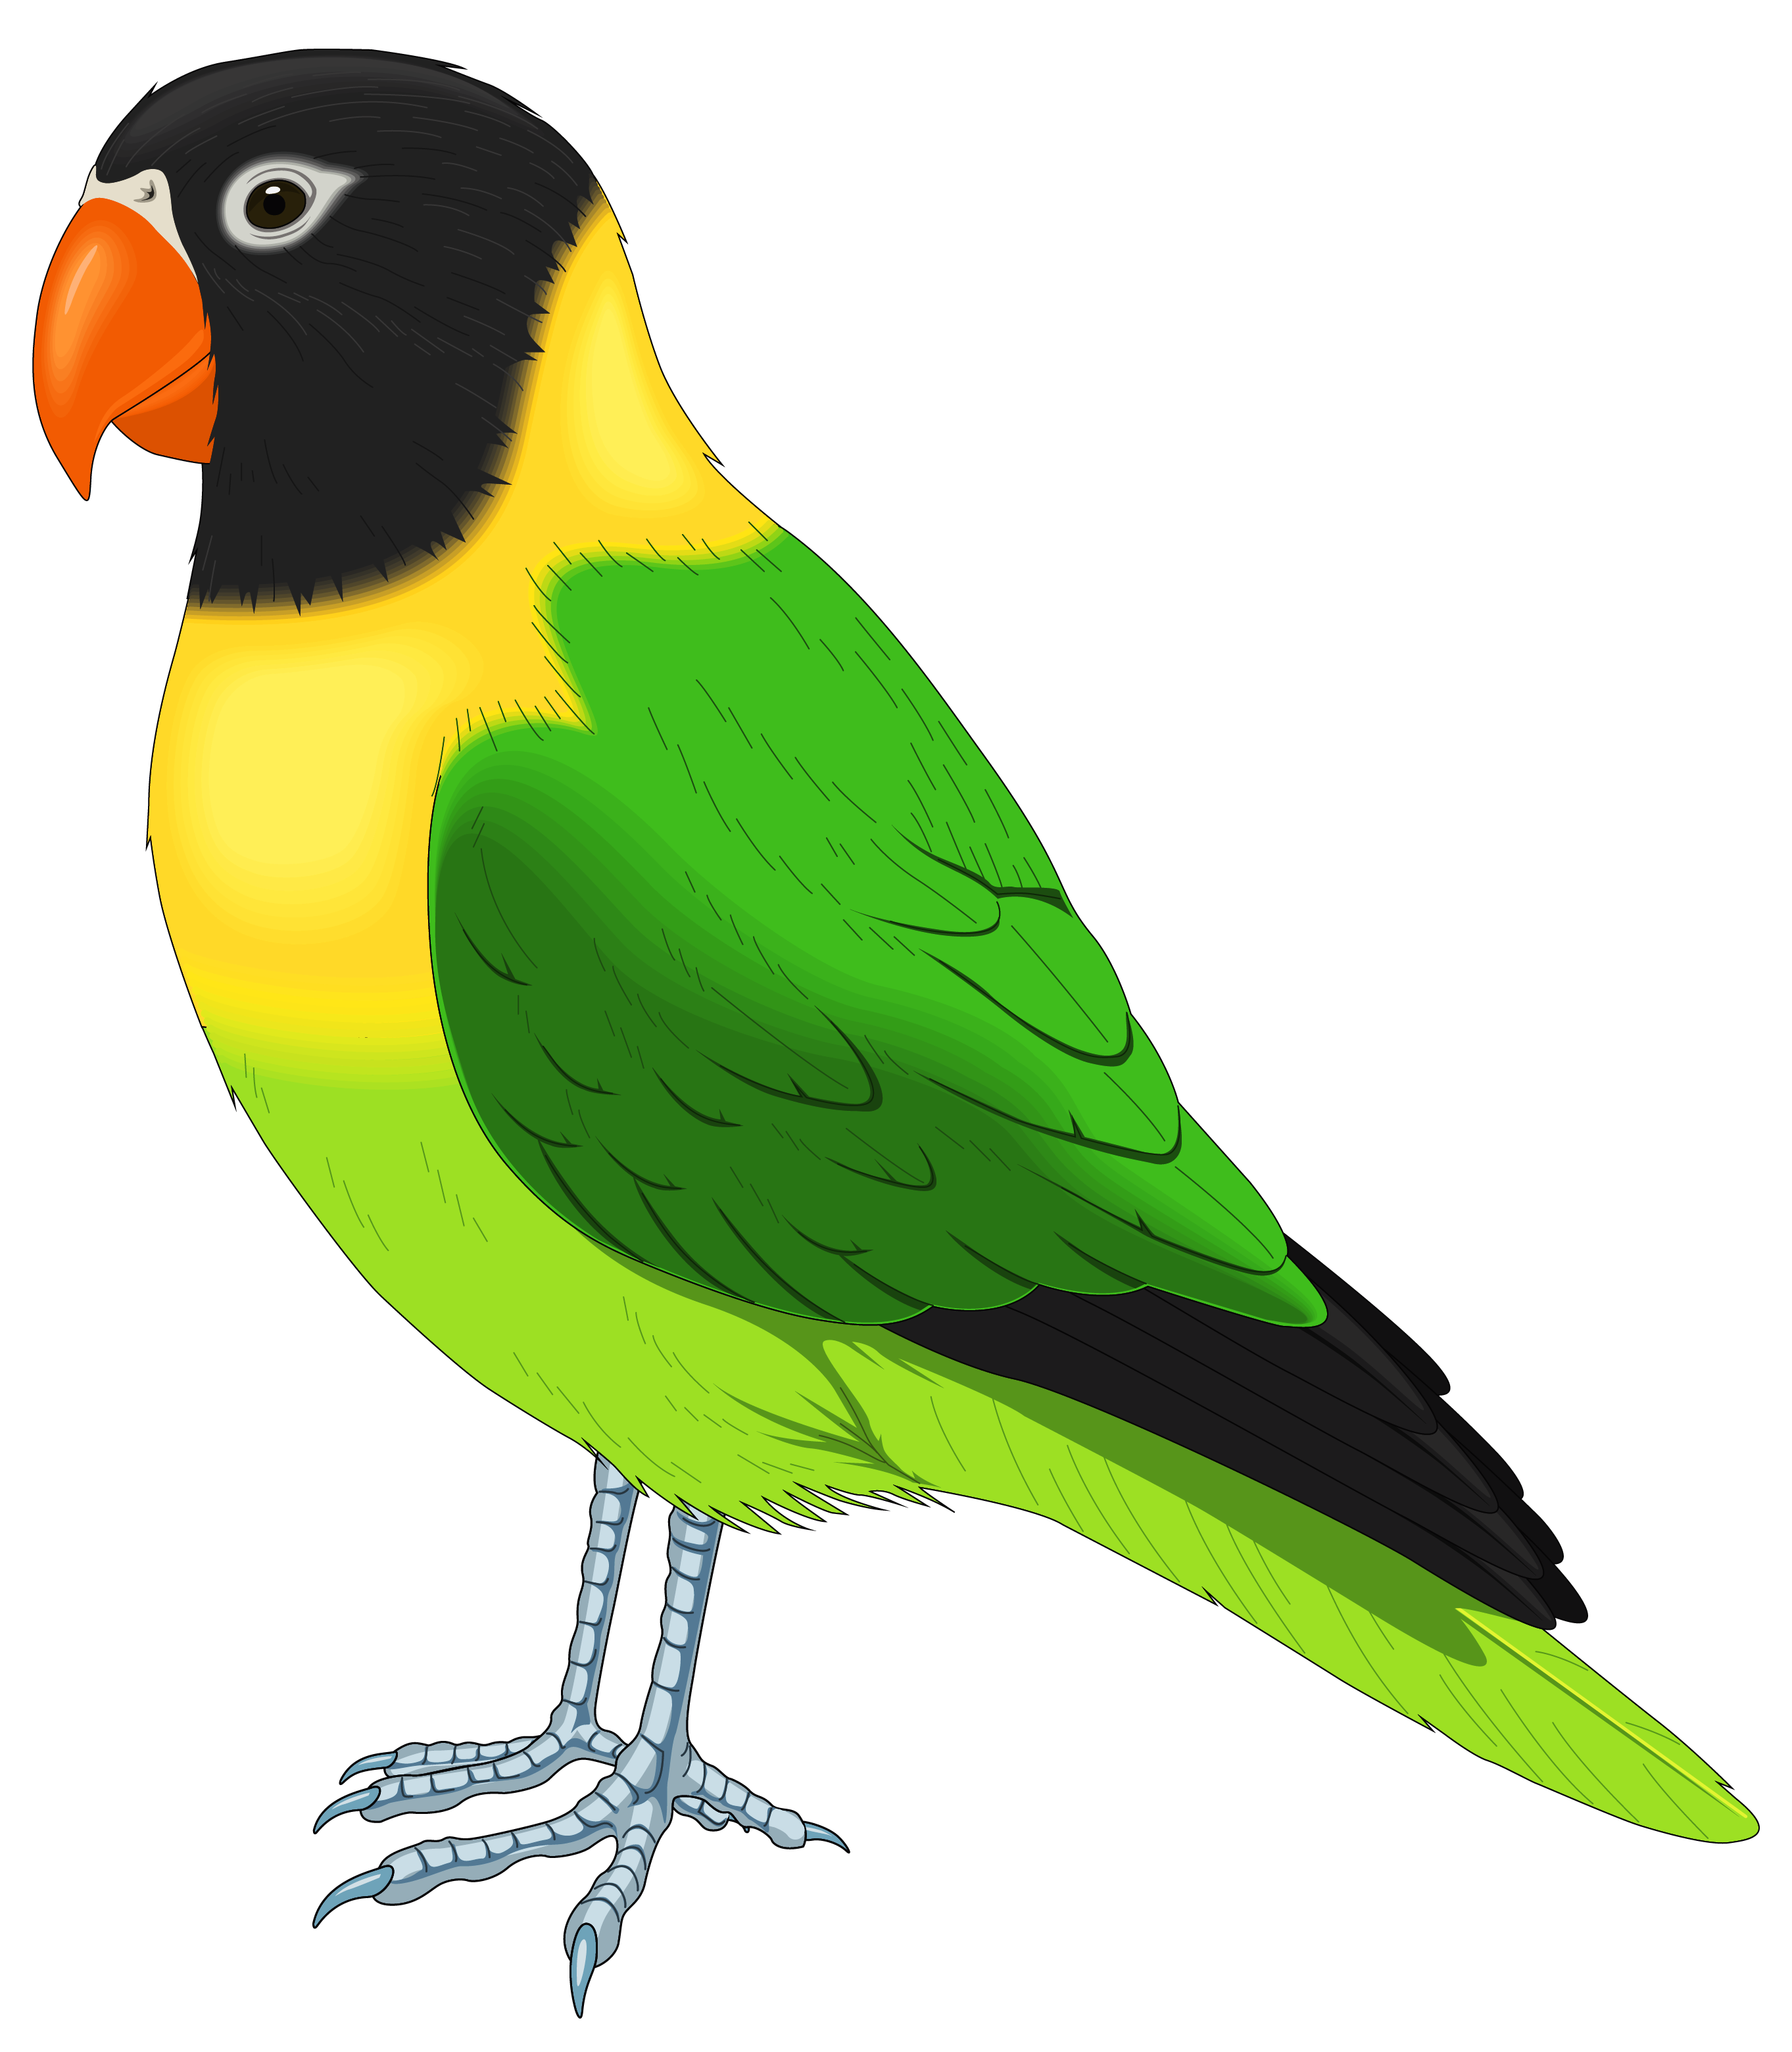 Green and Yellow Bird PNG Clipart Image.